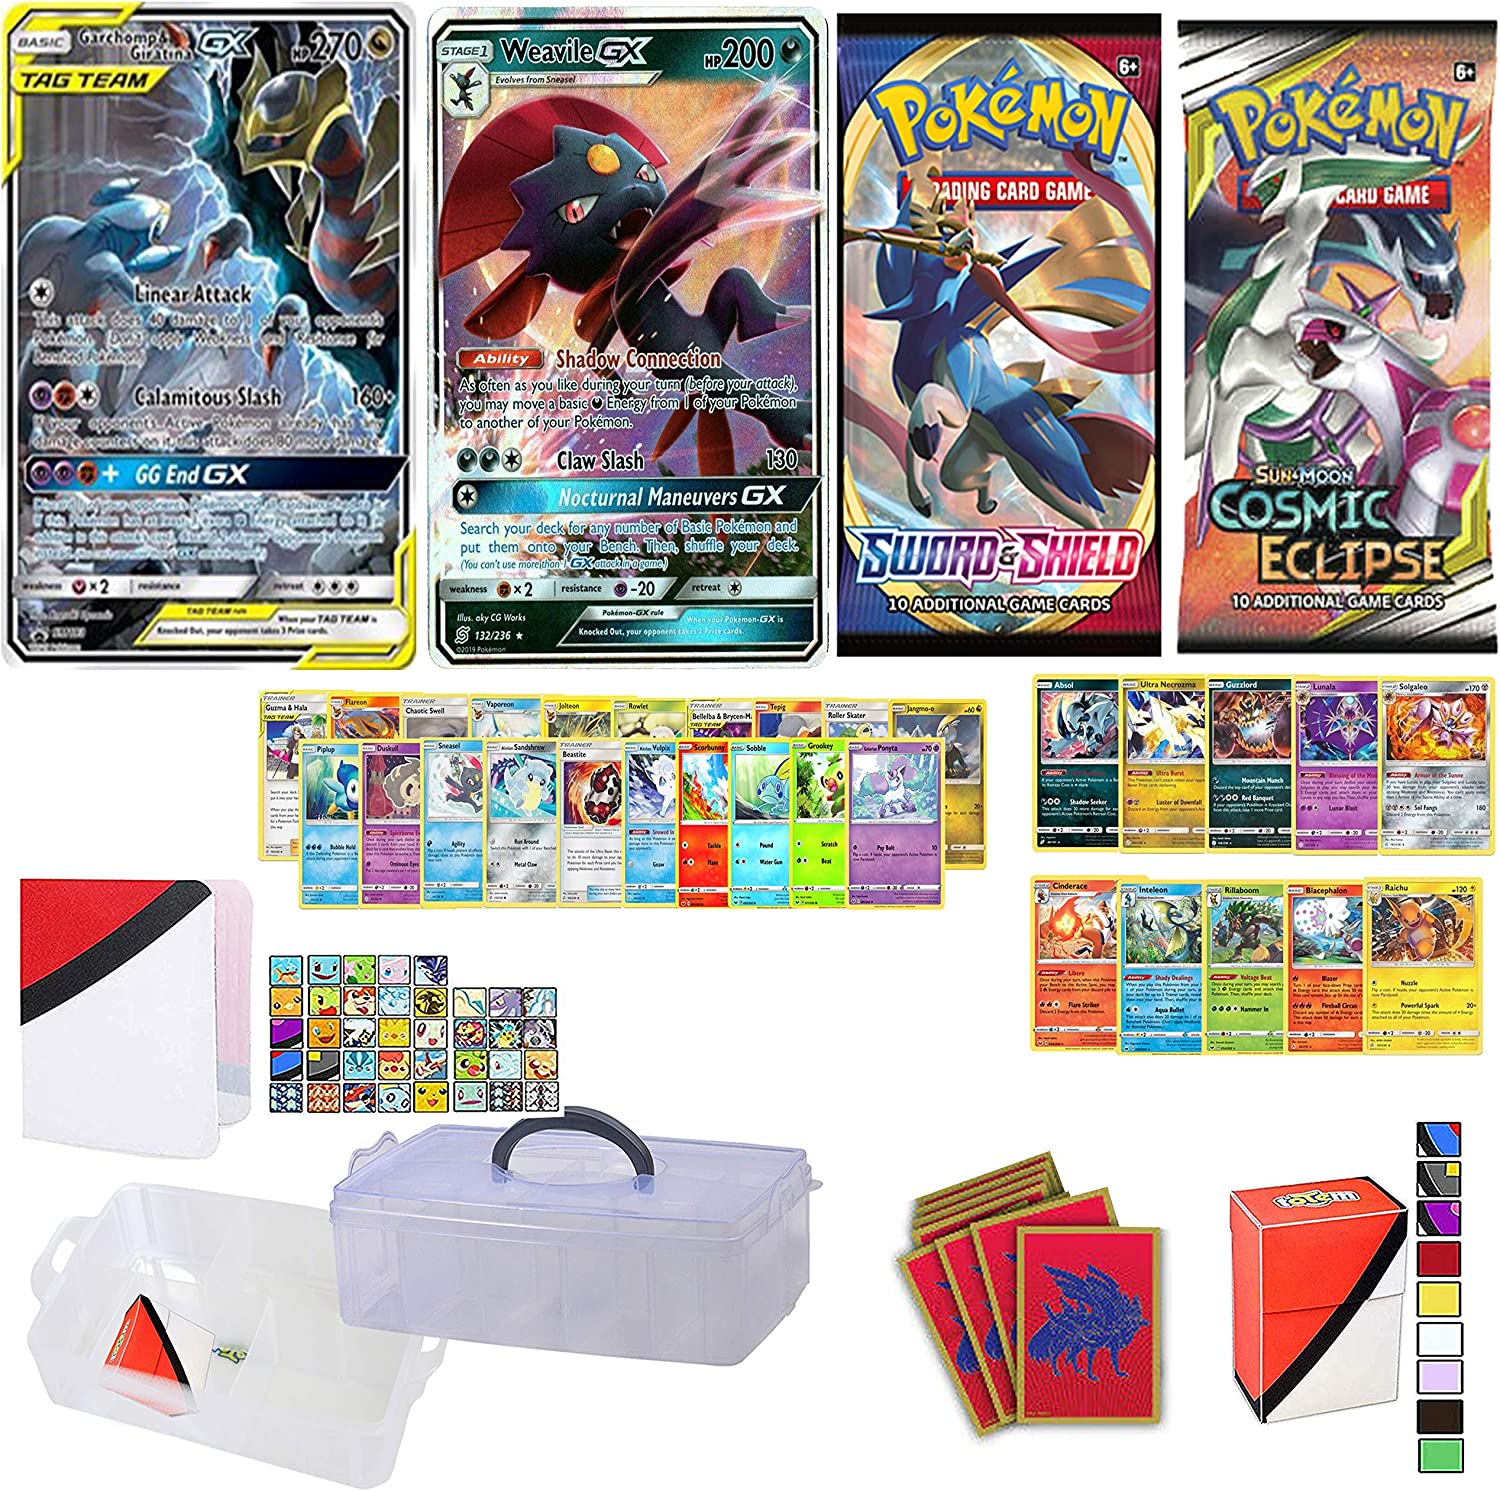 Used Pokemon Card Zecrome Deck Case Sleeve